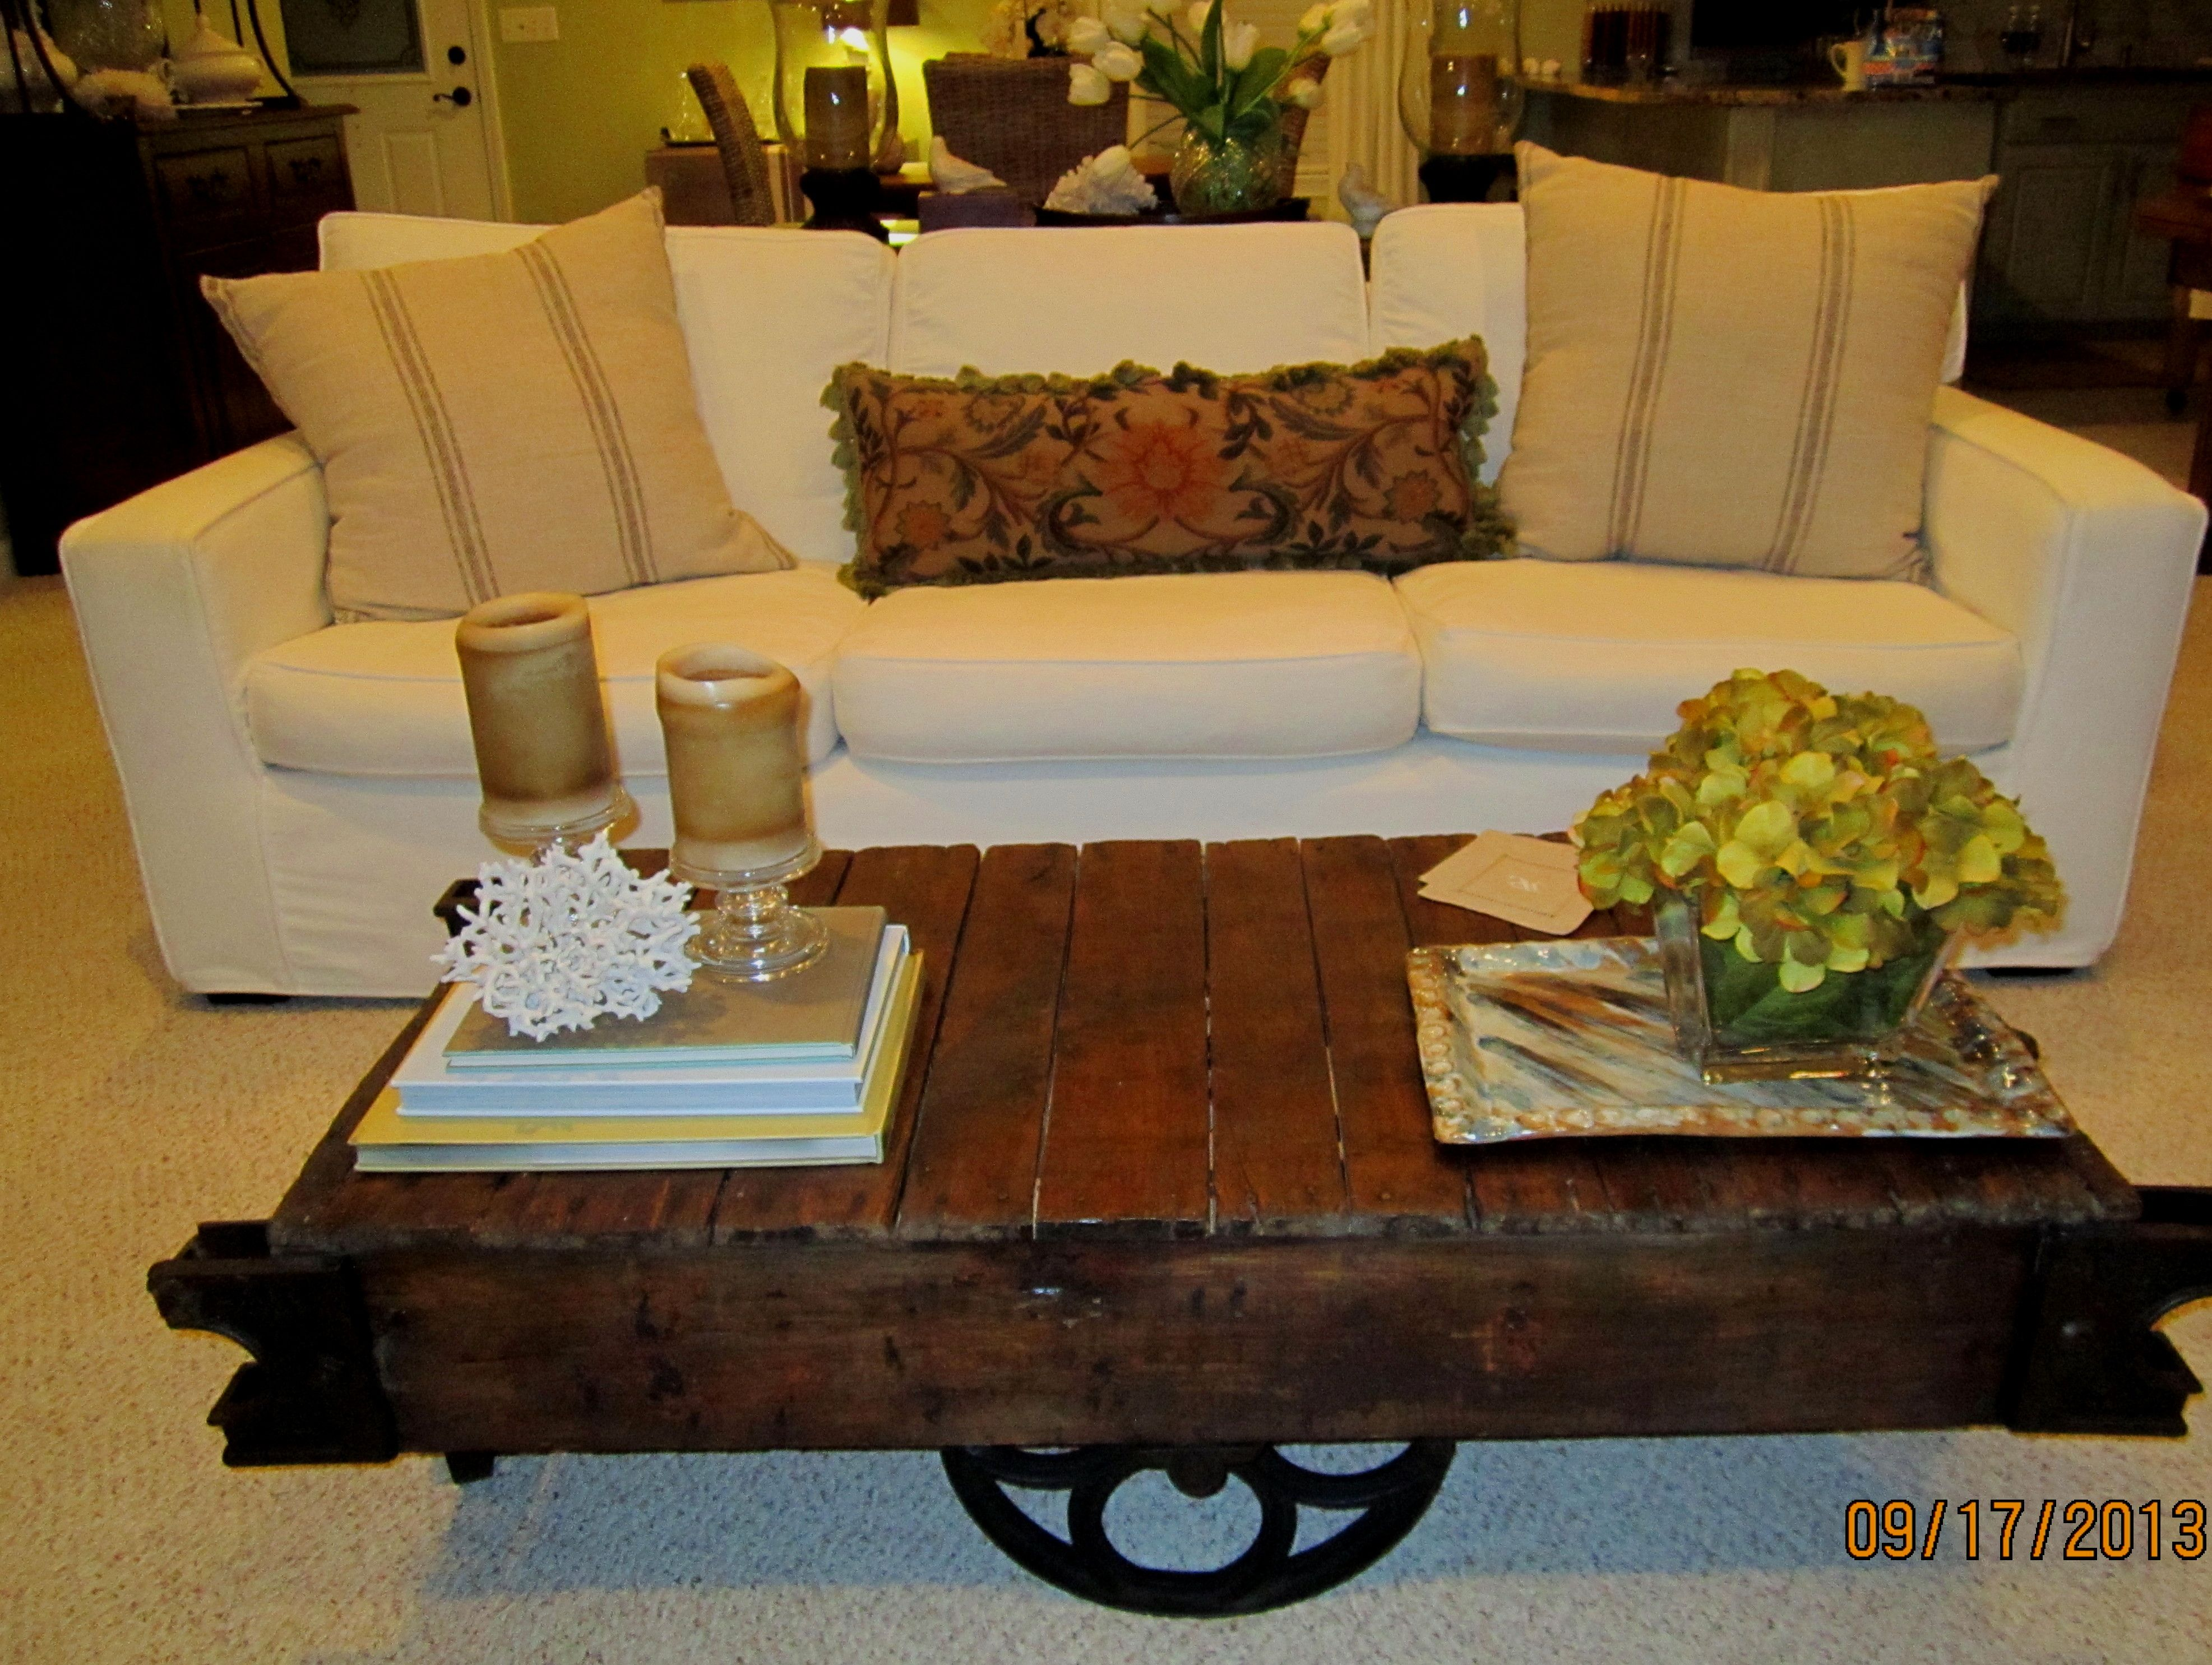 Attractive 1000+ Images About Coffee Table On Pinterest | Wicker Coffee Table, Cottage  Living Rooms And Antiques